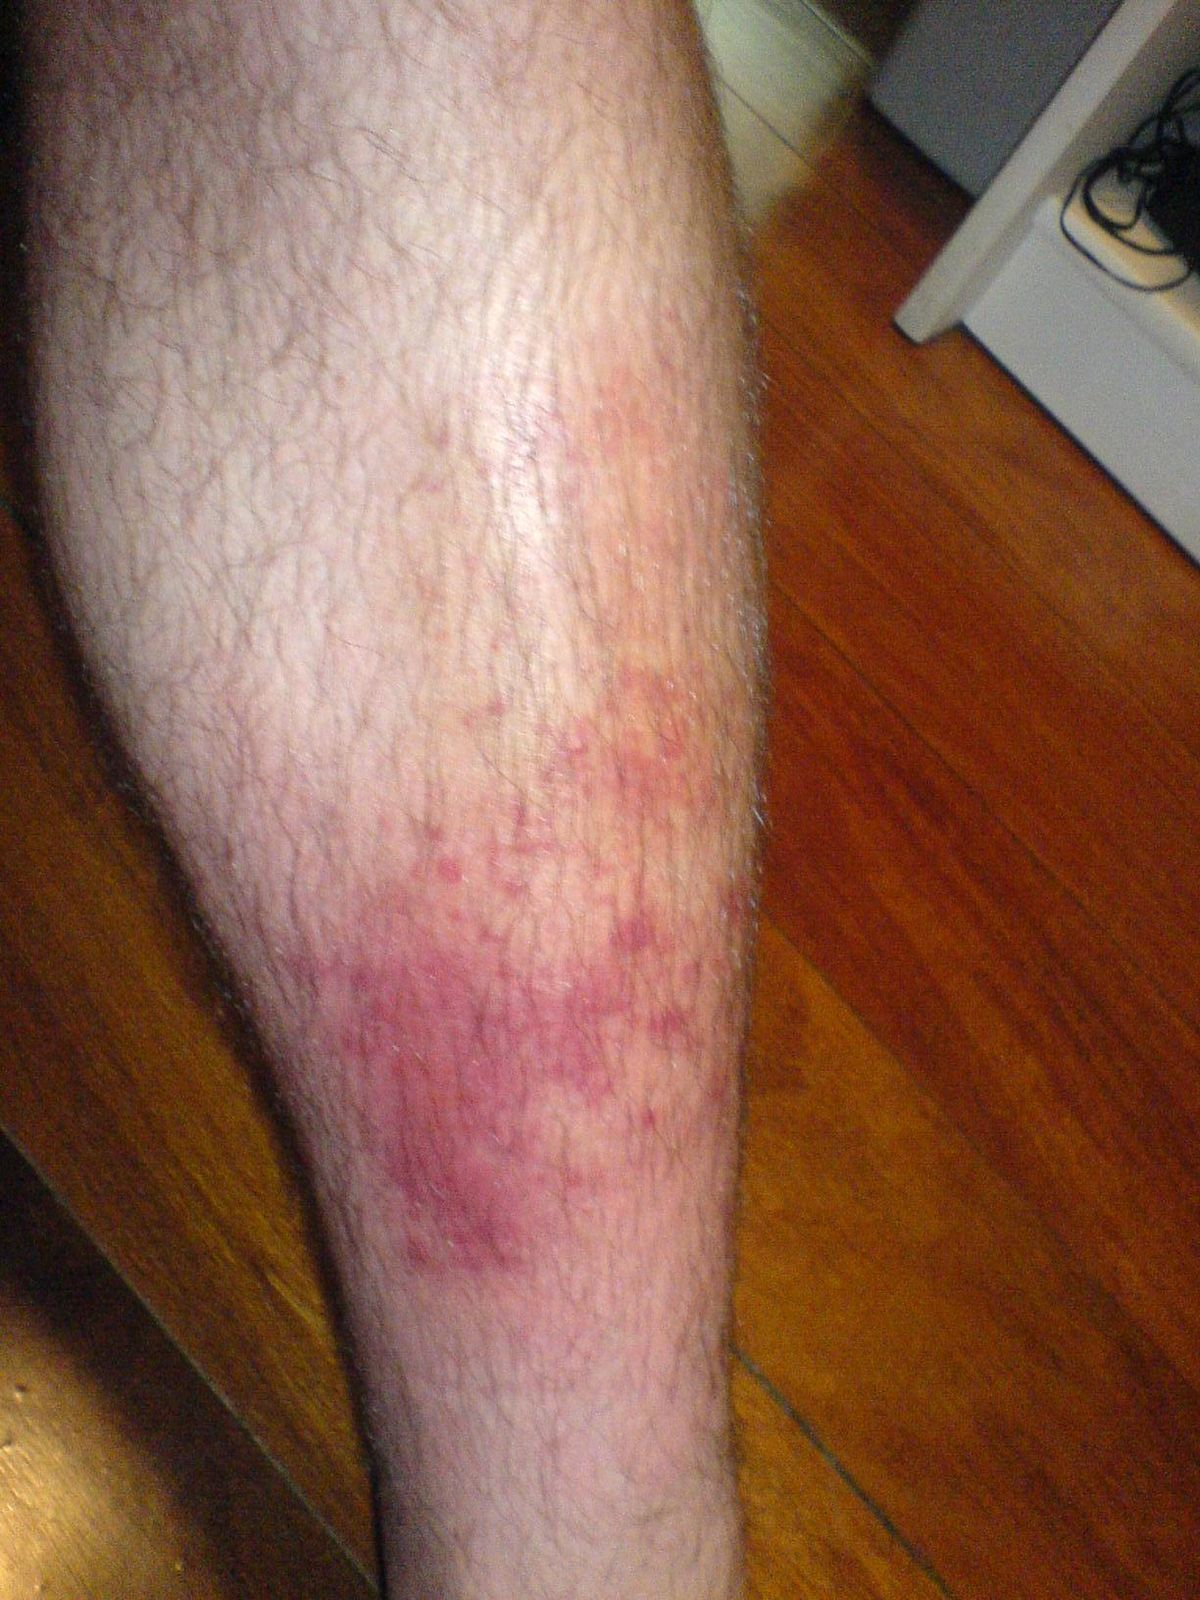 K Dog Strain Cellulitis - Wikipedia